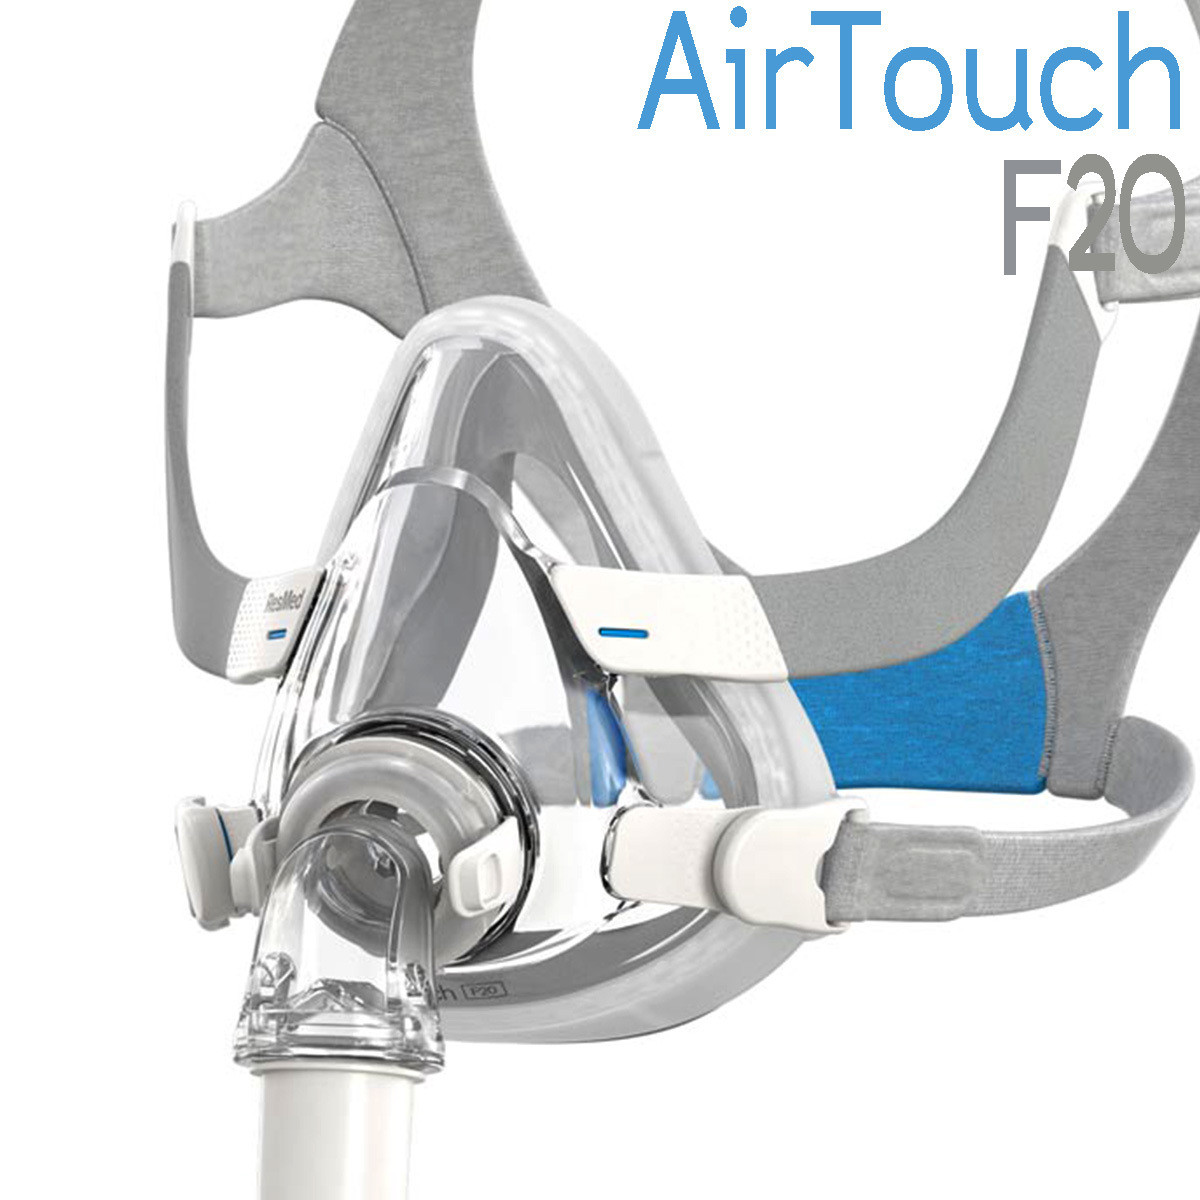 Mascarilla Oronasal AirTouch F20 ResMed - CPAP, BiPAP